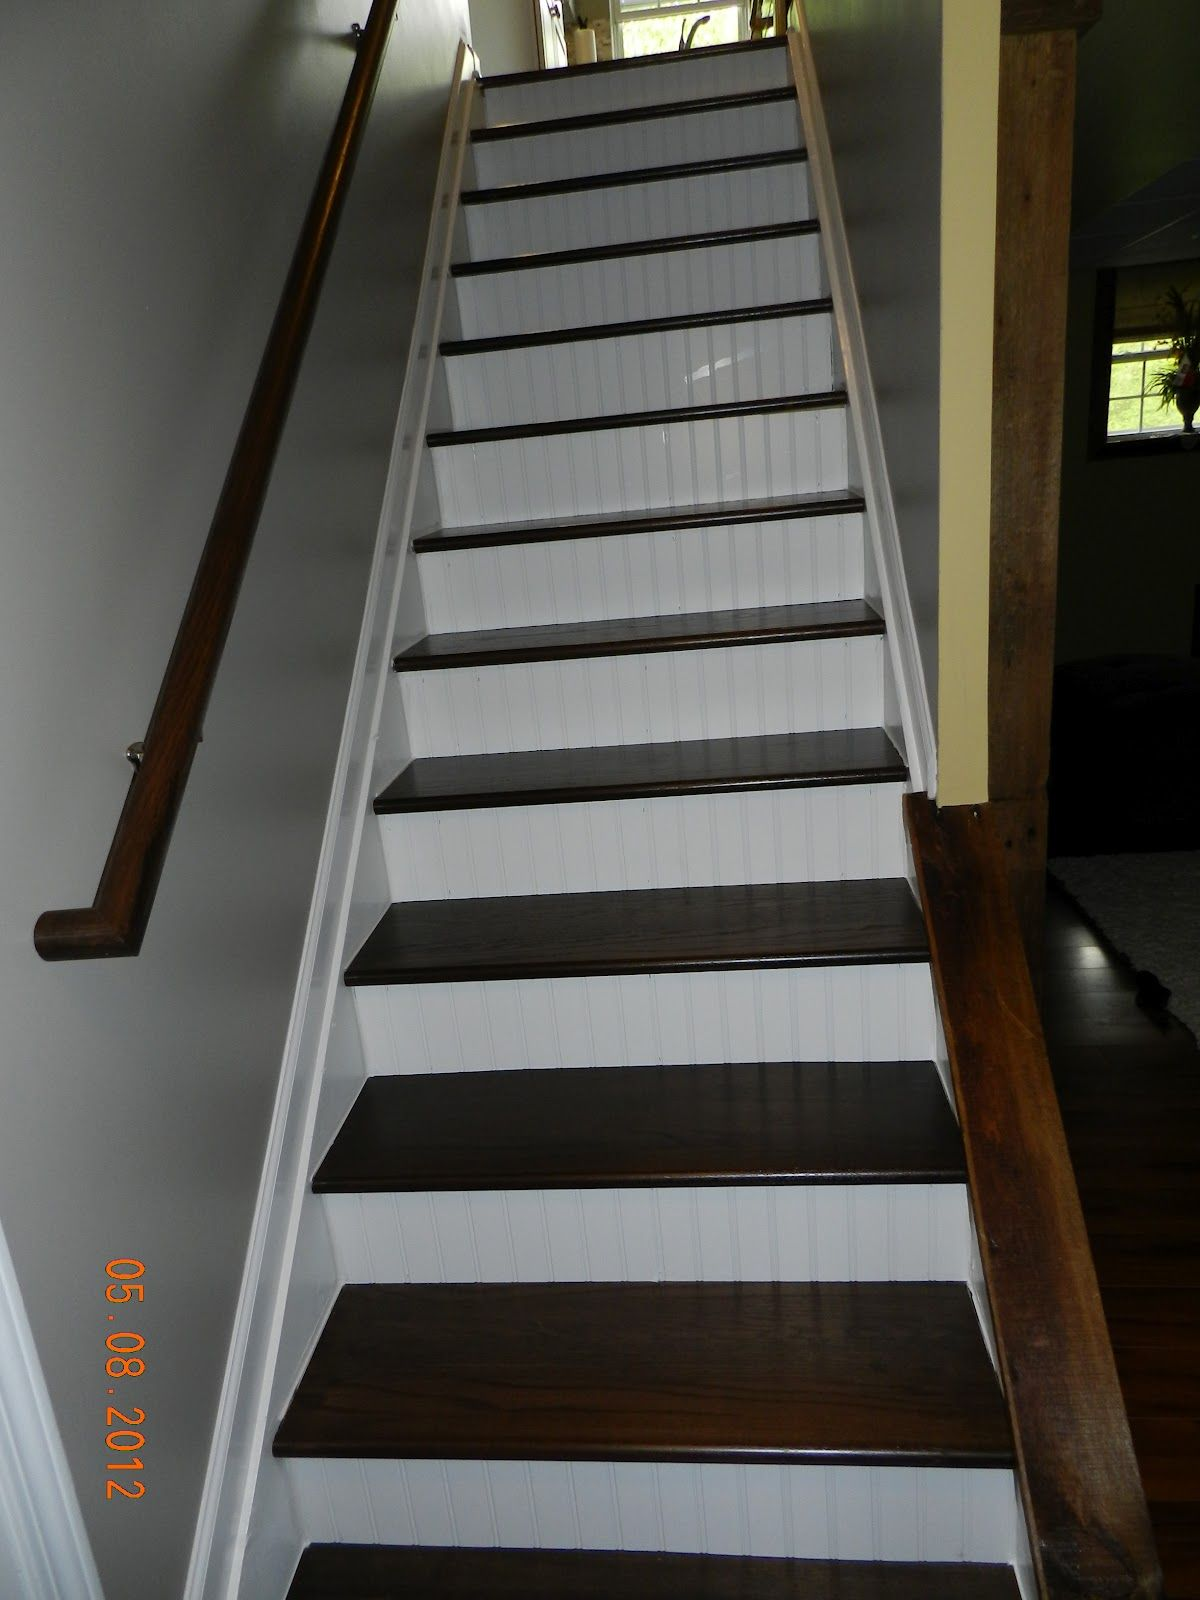 Paint/Beadboard  Carpet Needs To Come Up, Fix The Squeaks And Do This To  The Steps.